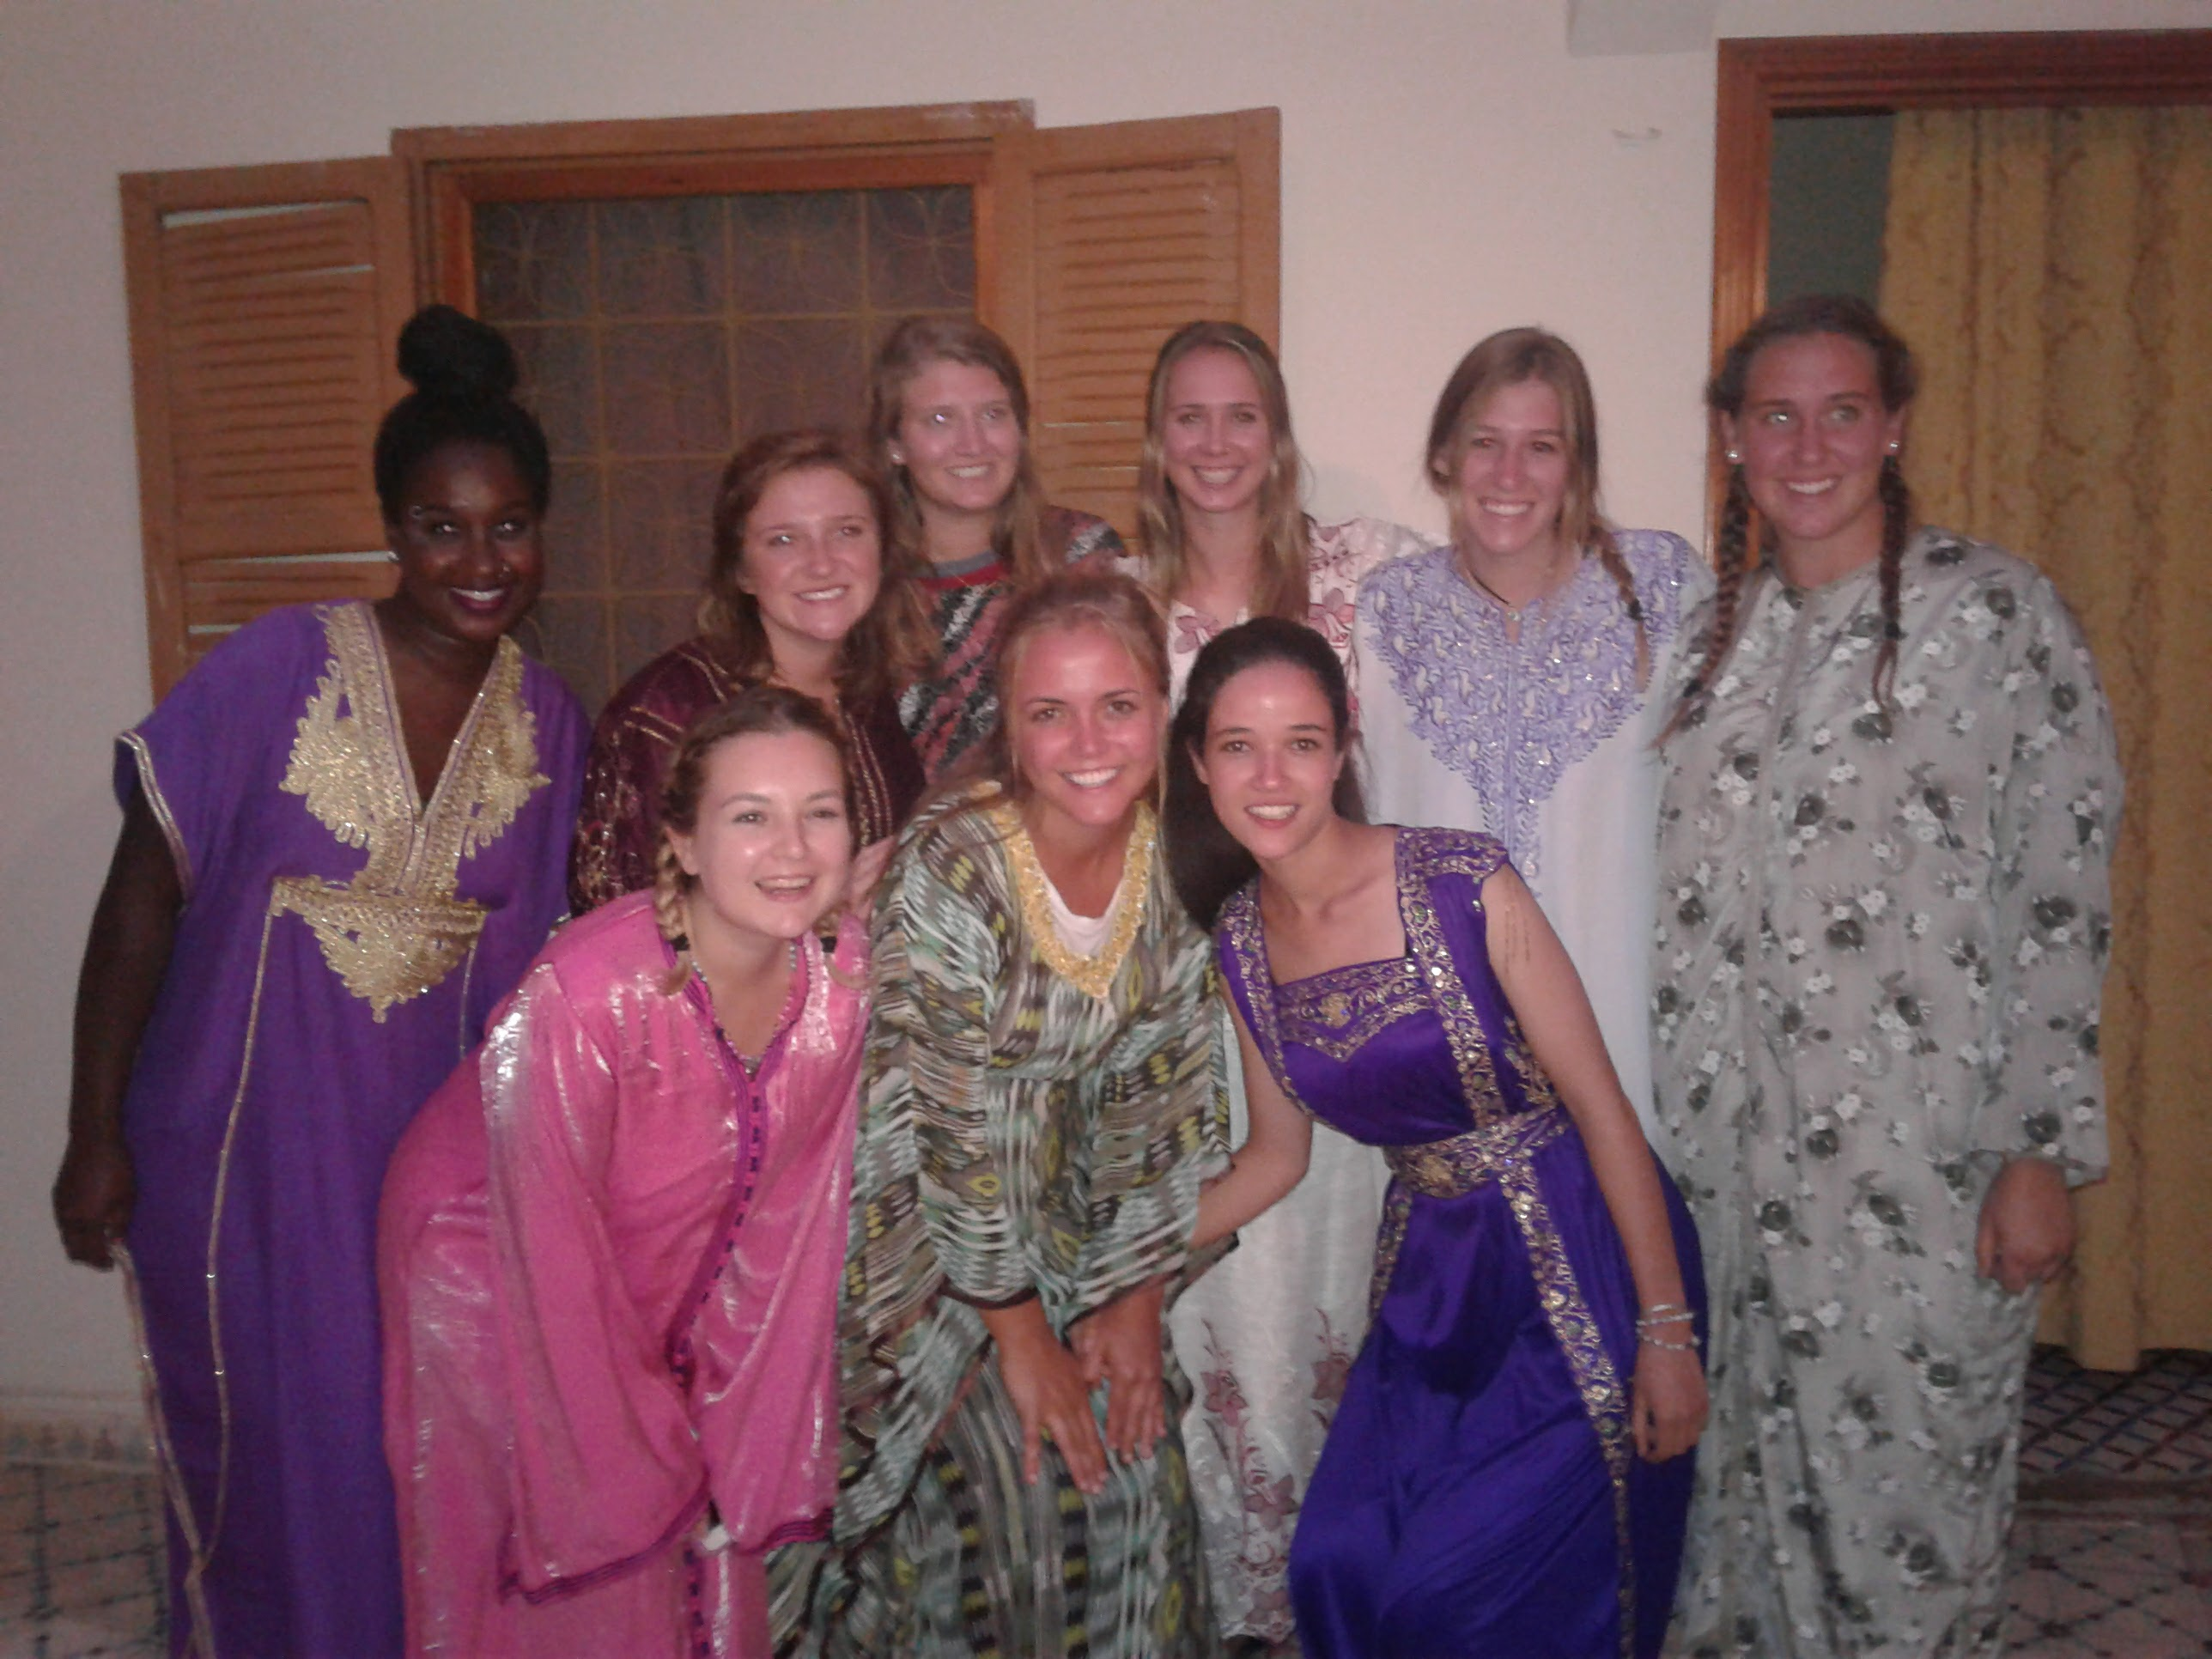 Celebrating in Moroccan dresses